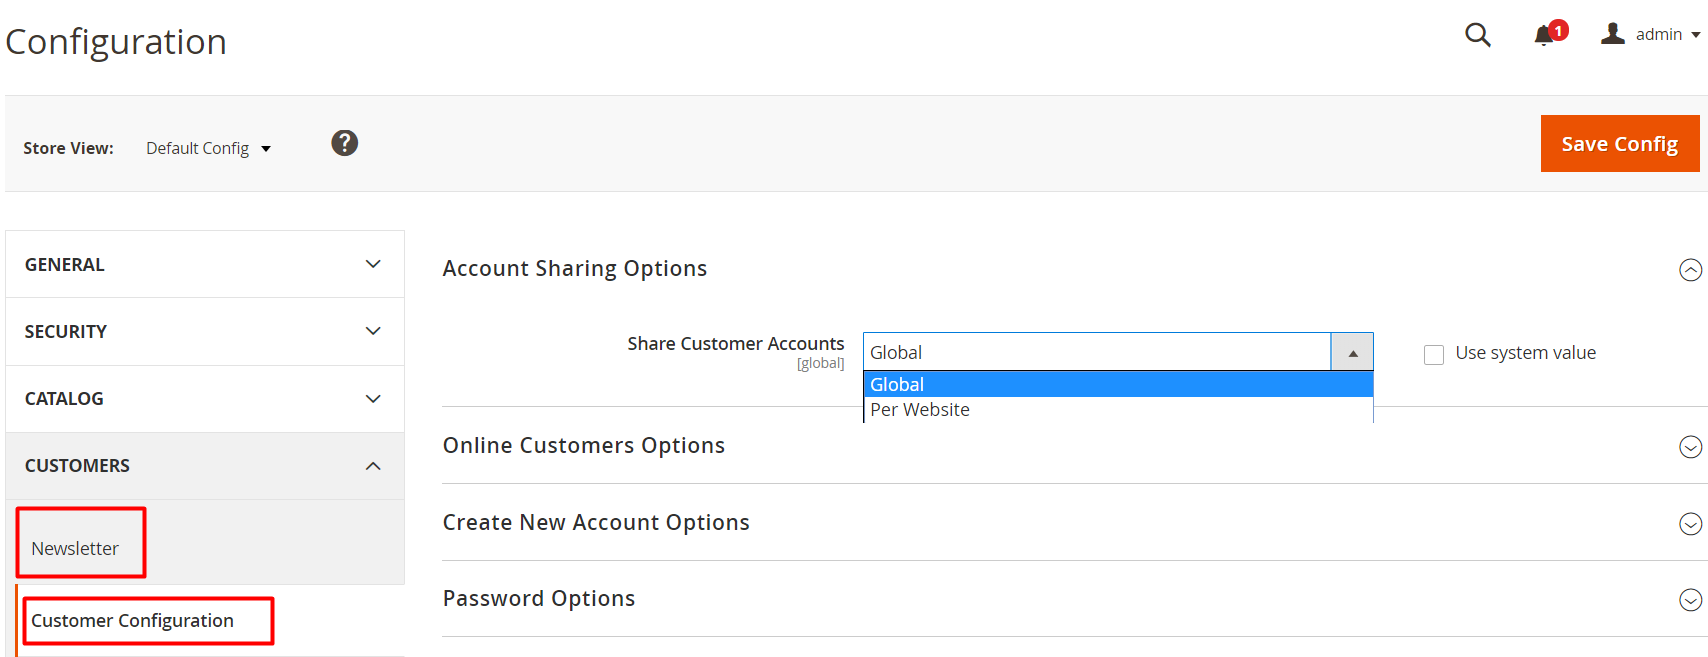 account sharing options